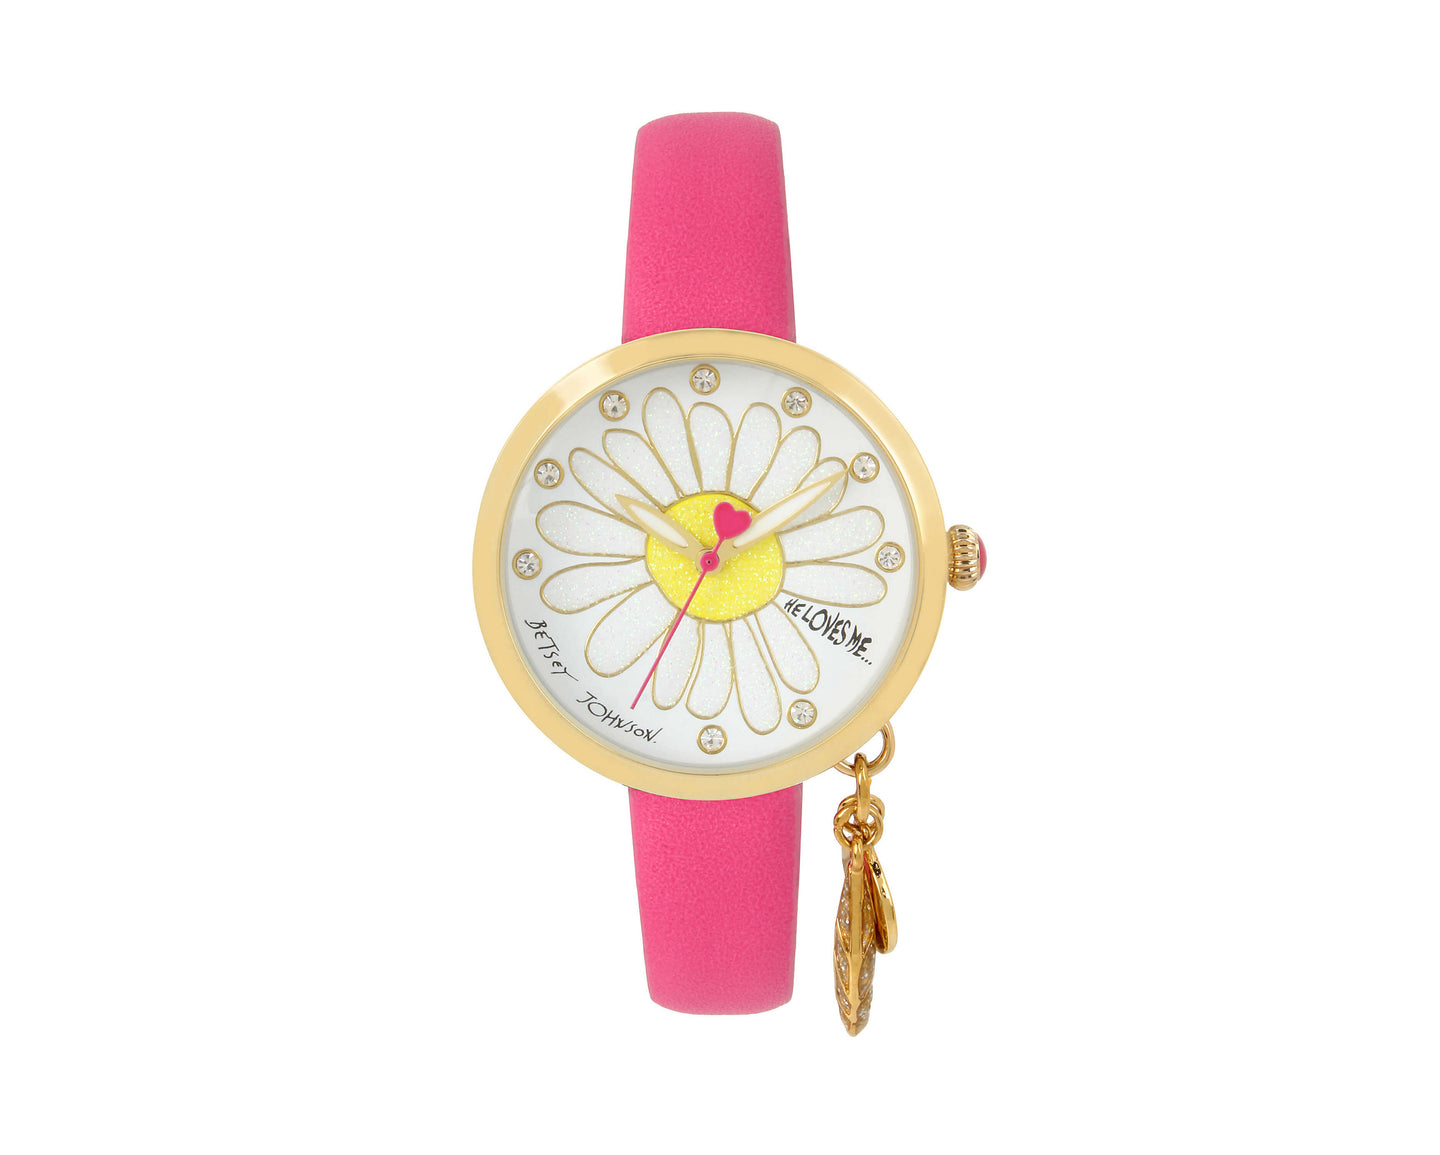 HE LOVES ME DANGLE PINK WATCH PINK - JEWELRY - Betsey Johnson